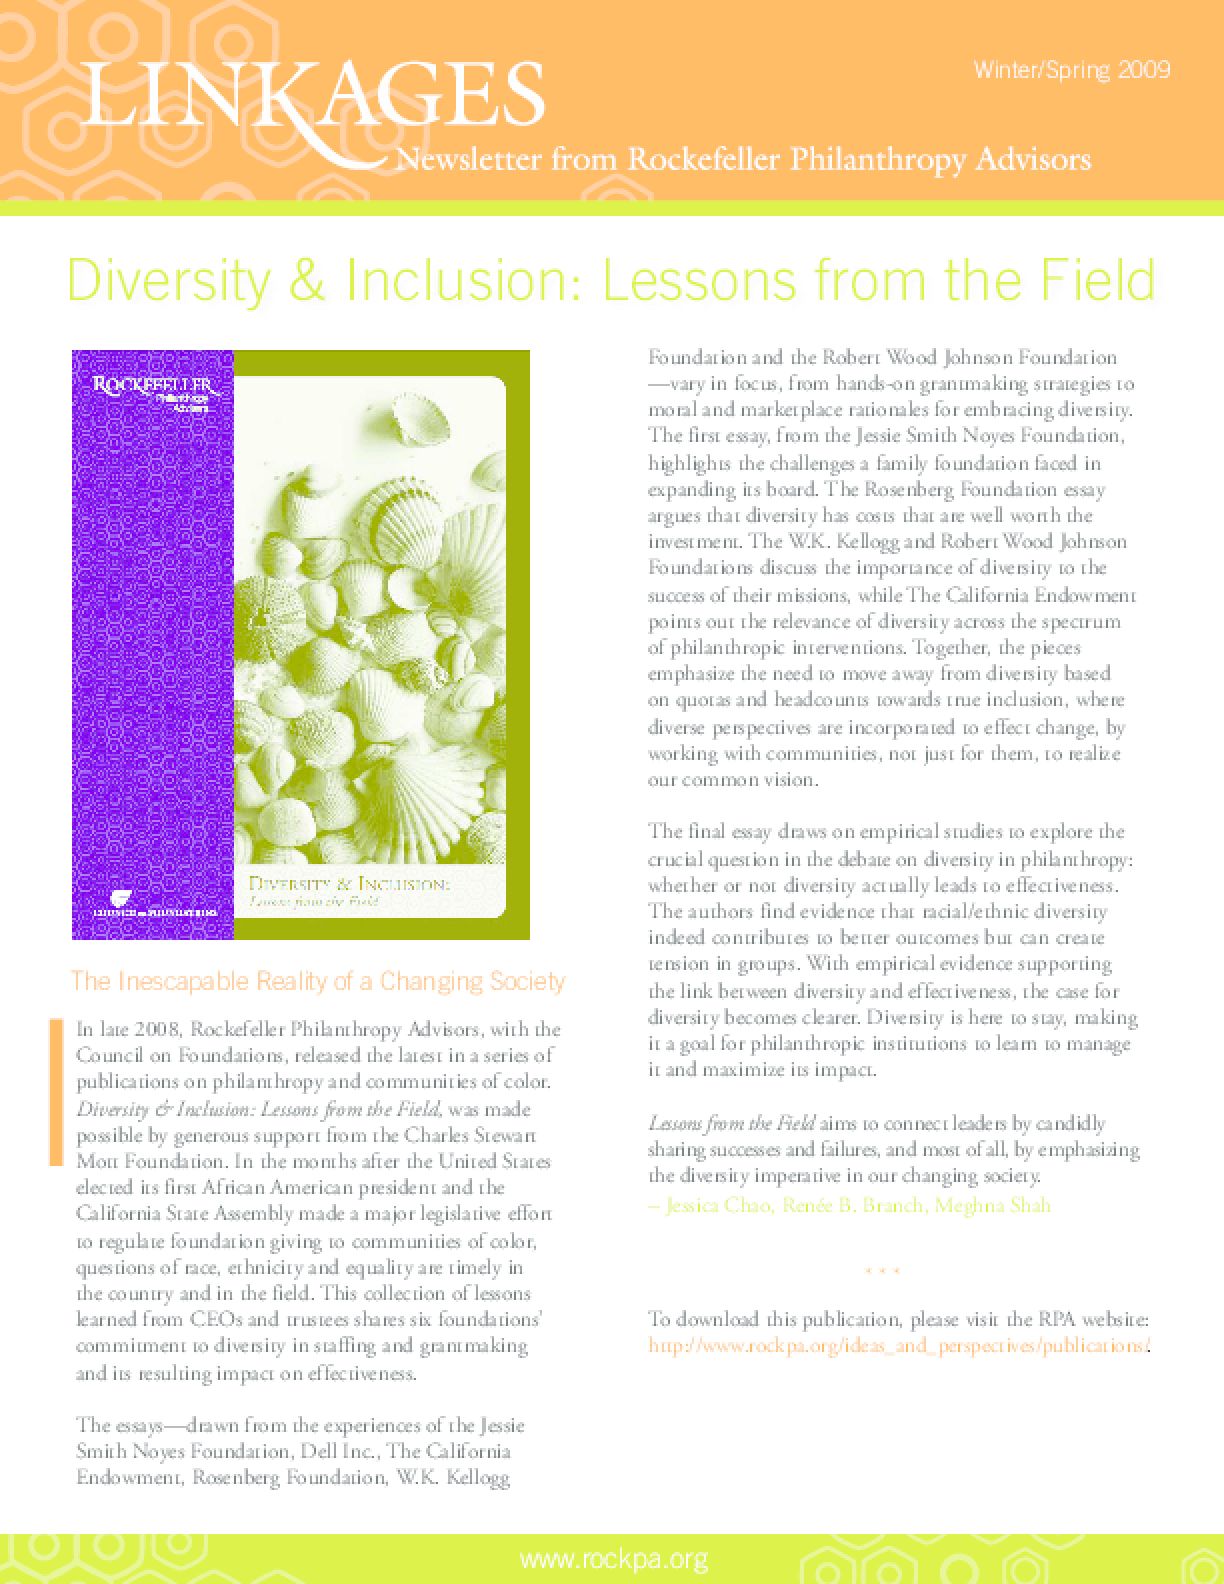 Diversity & Inclusion: Lessons From the Field